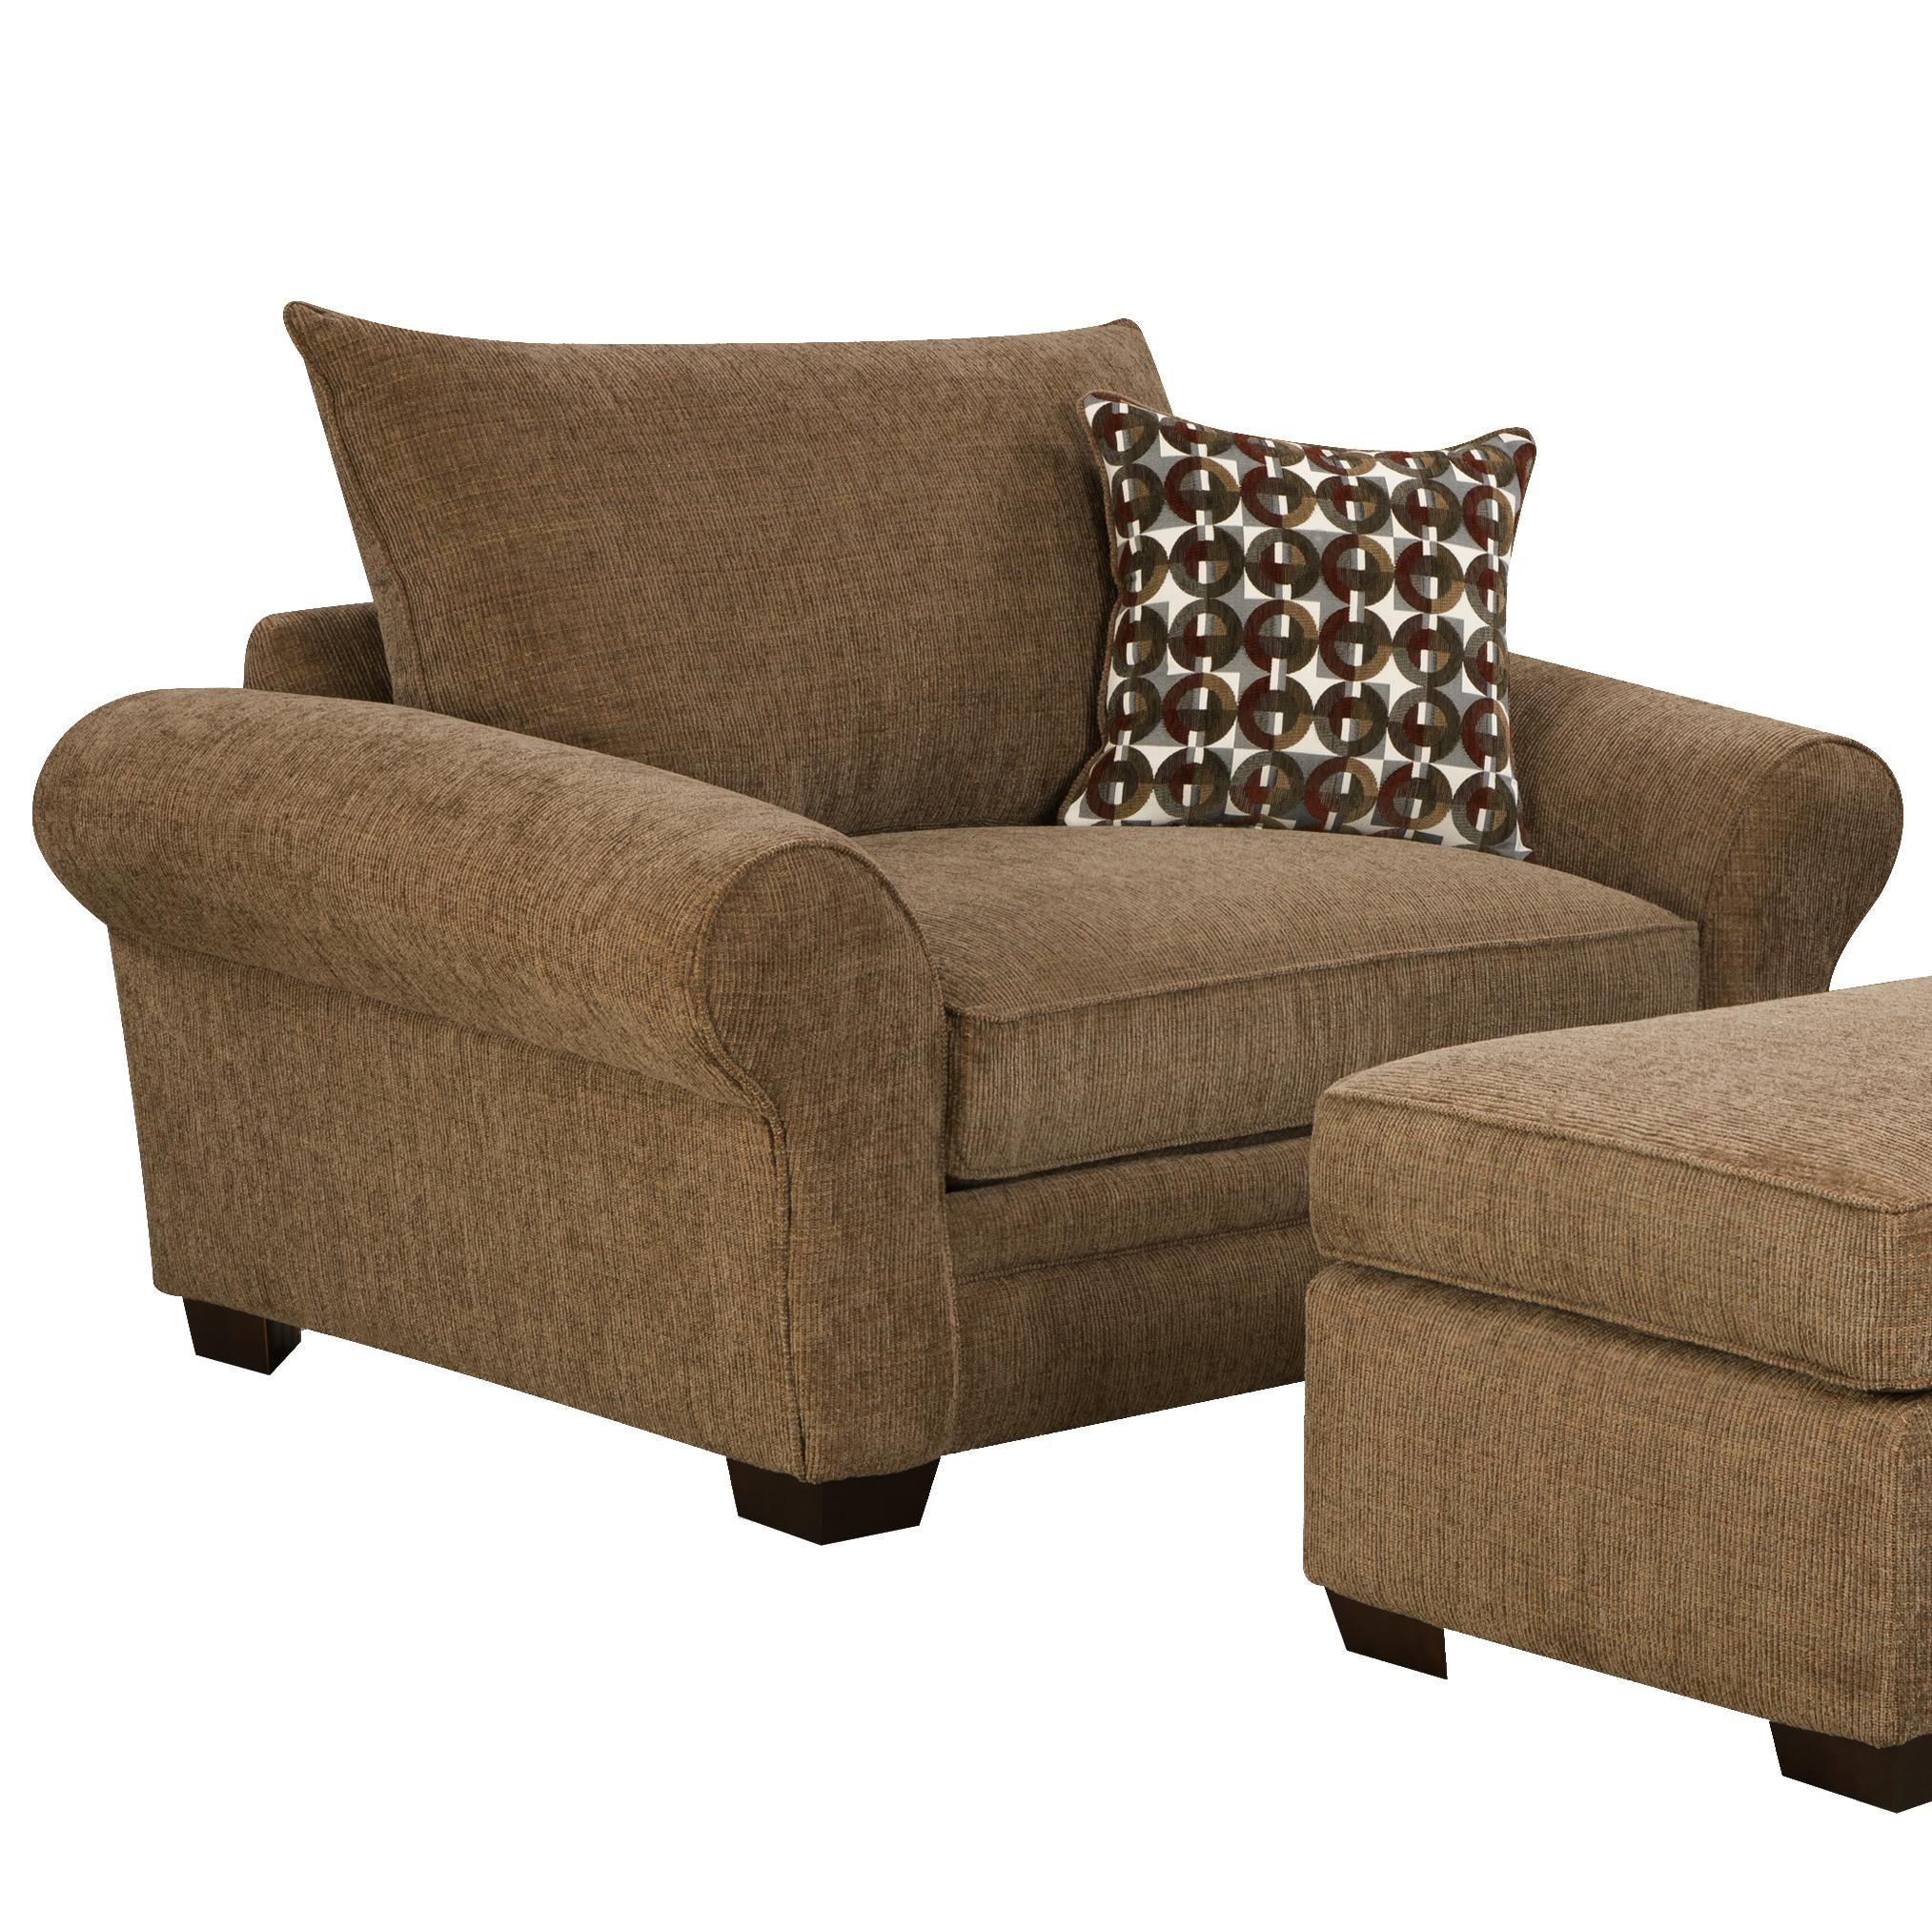 Extra Large Chair and a Half for Casual Styled Living Room